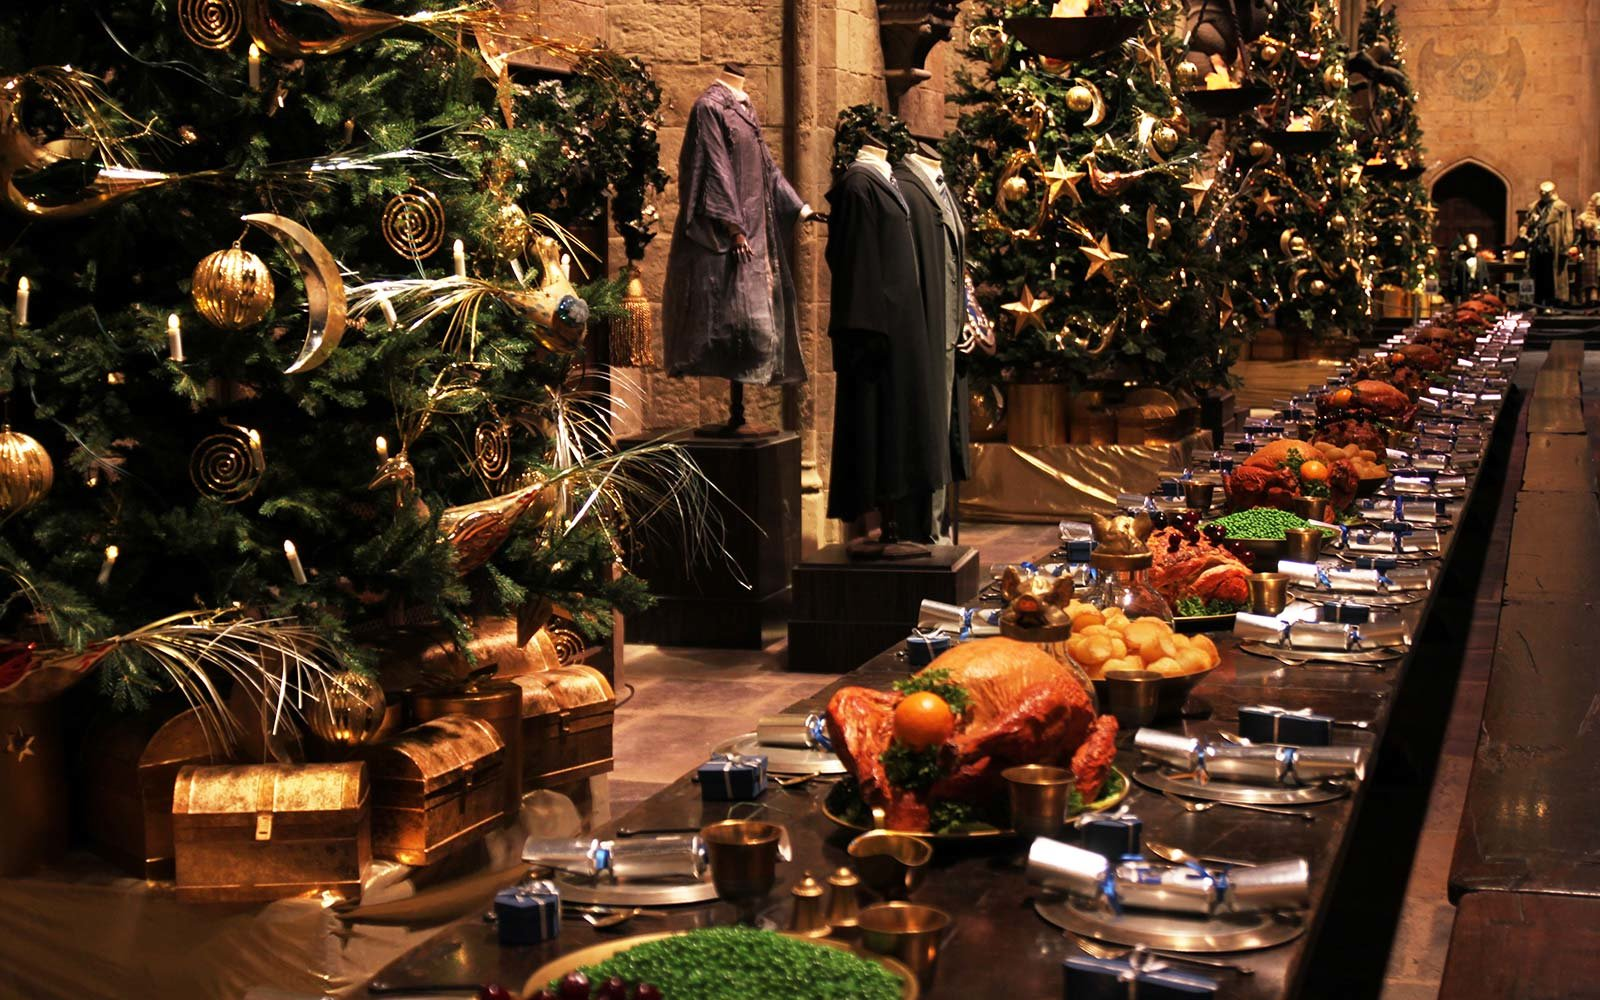 You Can Eat A Christmas Feast And Attend The Yule Ball At